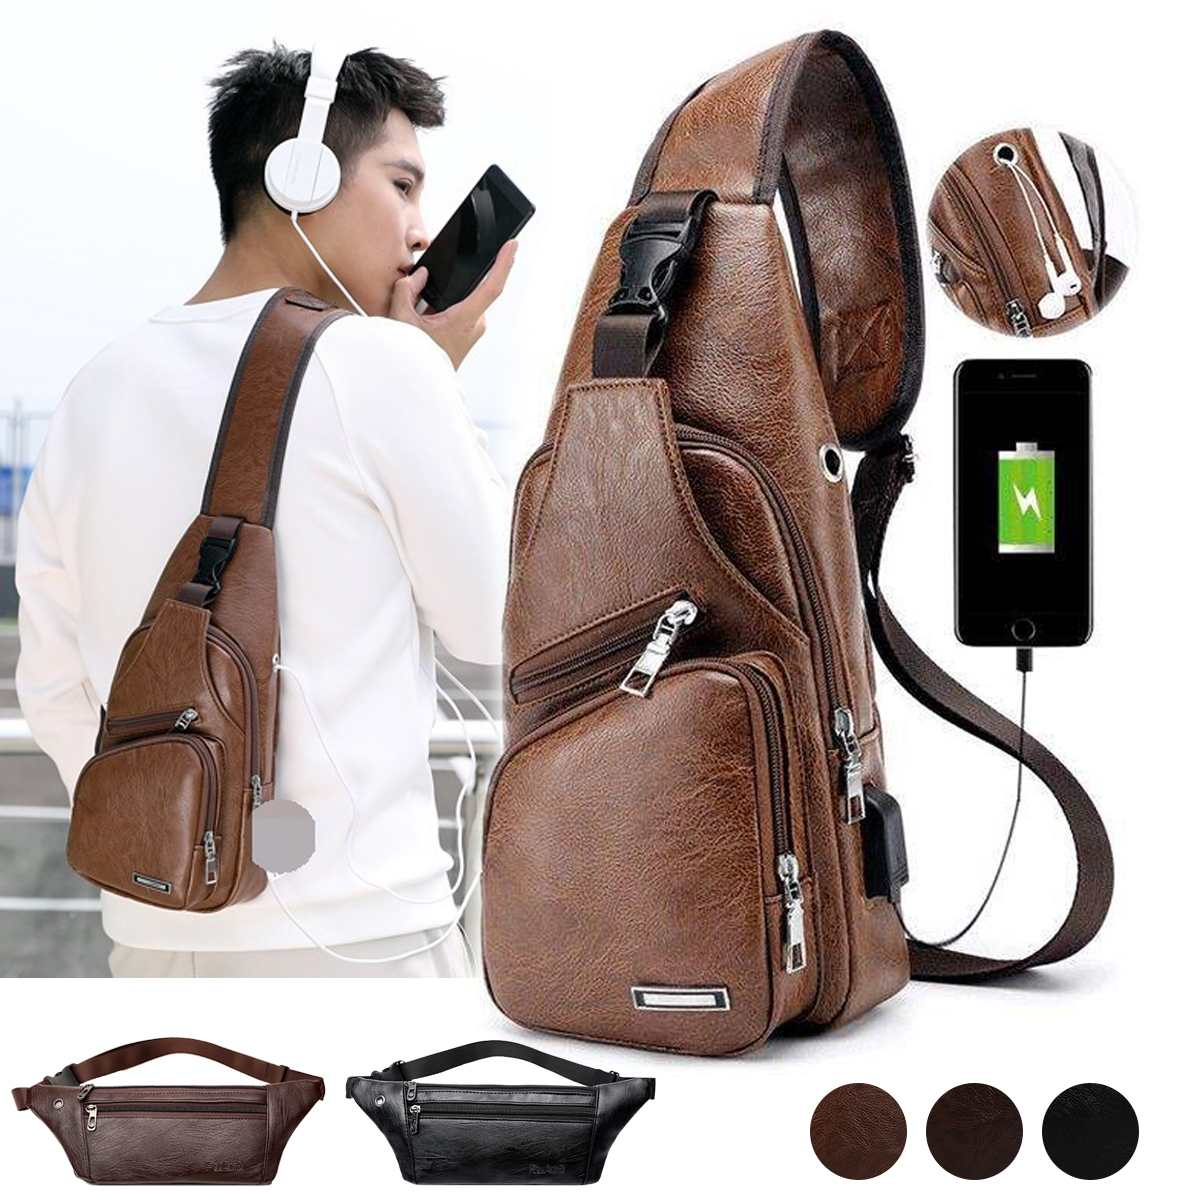 Men's Chest Bags Shoulder Messenger Bags PU Leather Waist Pack Casual Zipper Soft Fanny Pack Male Travel Sports Cross-body Bag